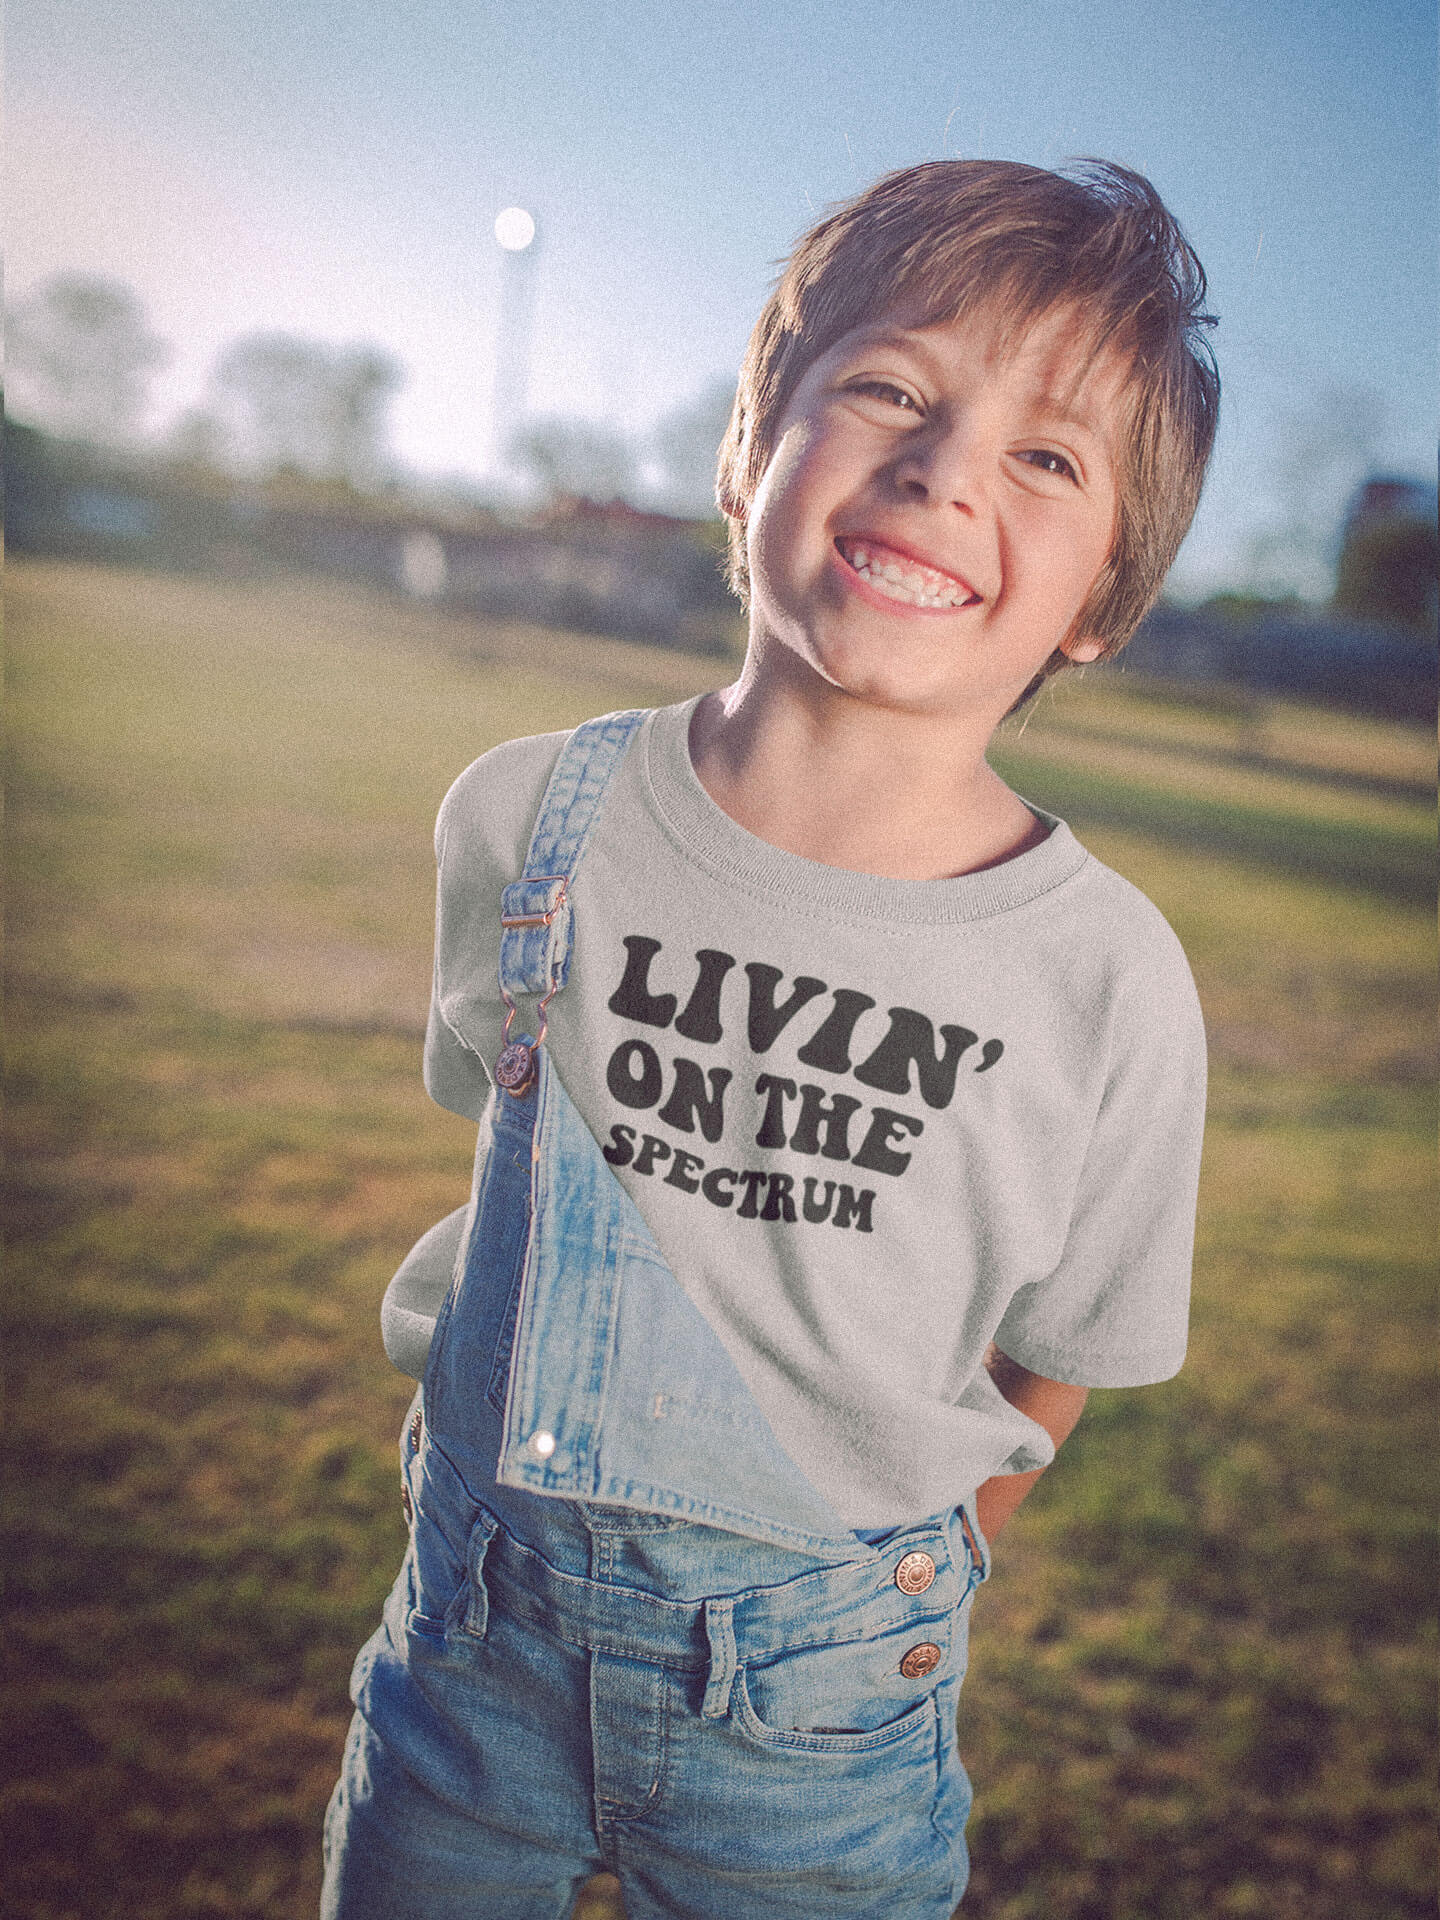 boy wearing livin on the spectrum autism grey t-shirt in field smiling